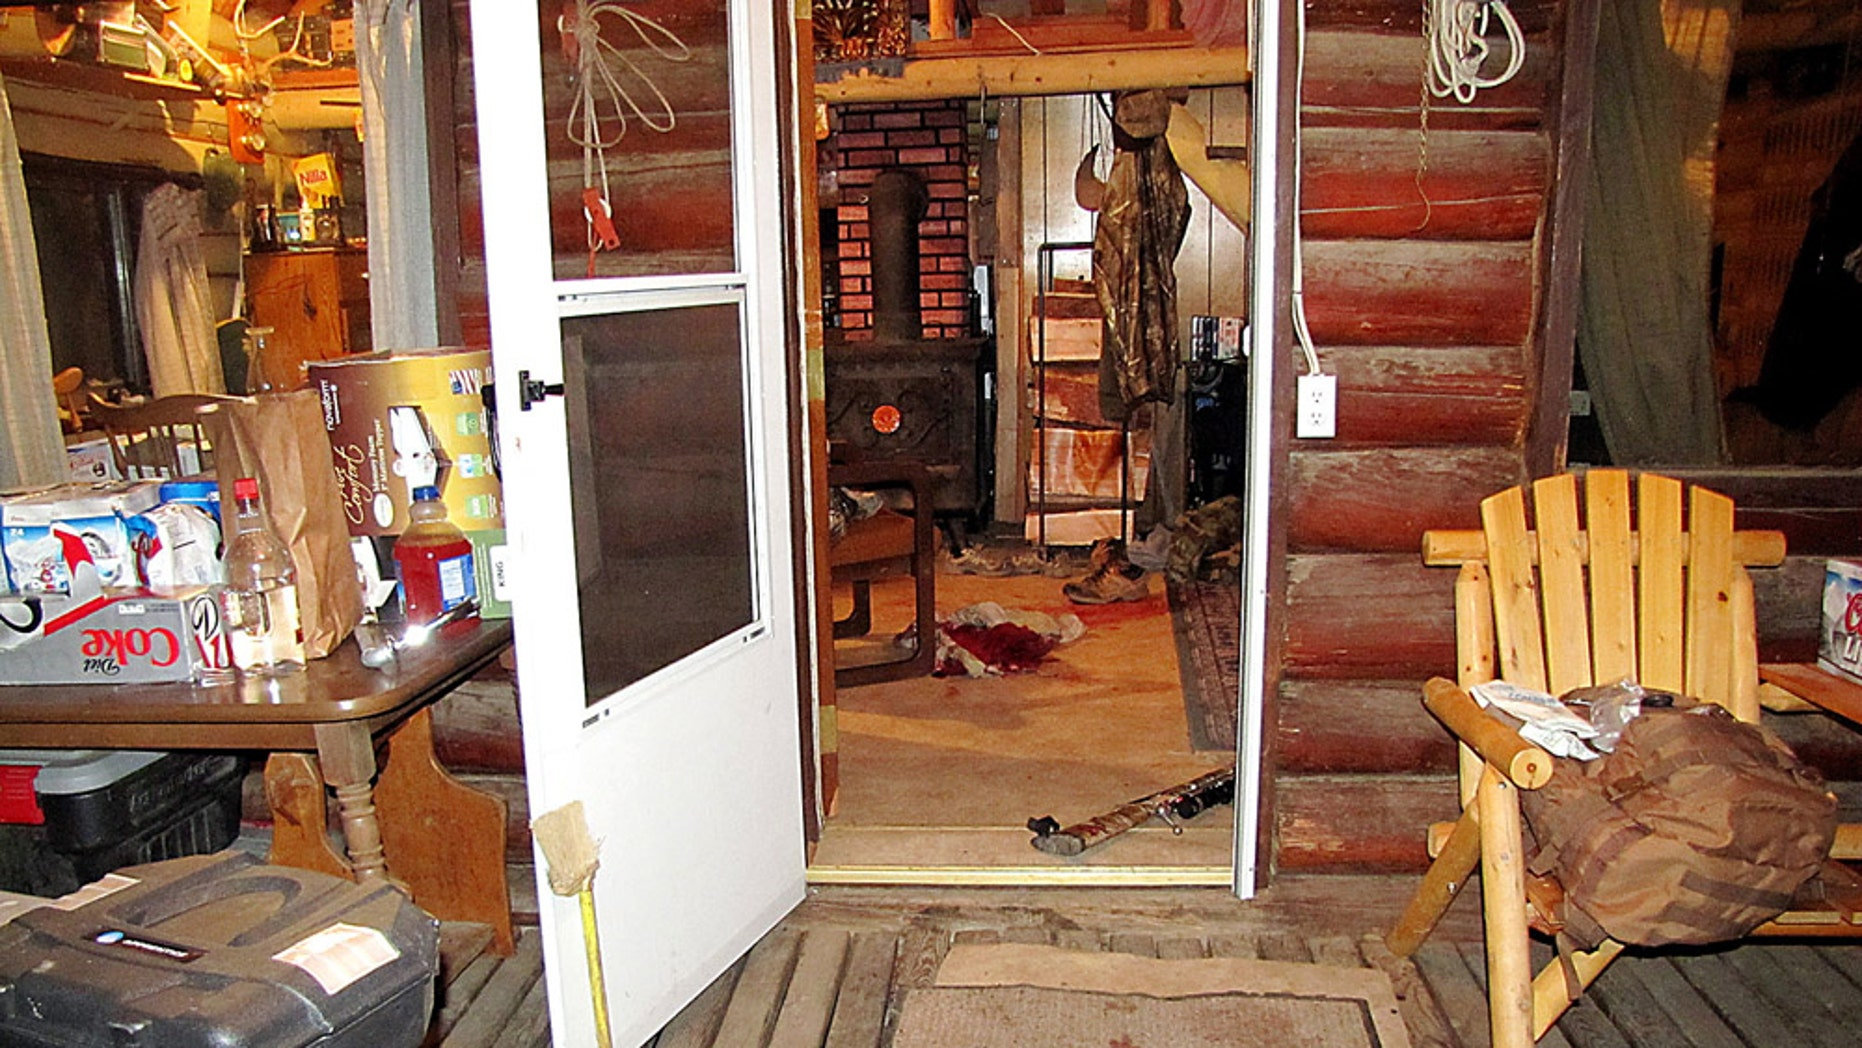 Oct. 2, 2013: This undated photo provided by the Grant County Sheriff shows a cabin near Granite, Ore., where a 14-year-old boy shot and killed two others and accidentally shot and wounded himself during a hunting trip.